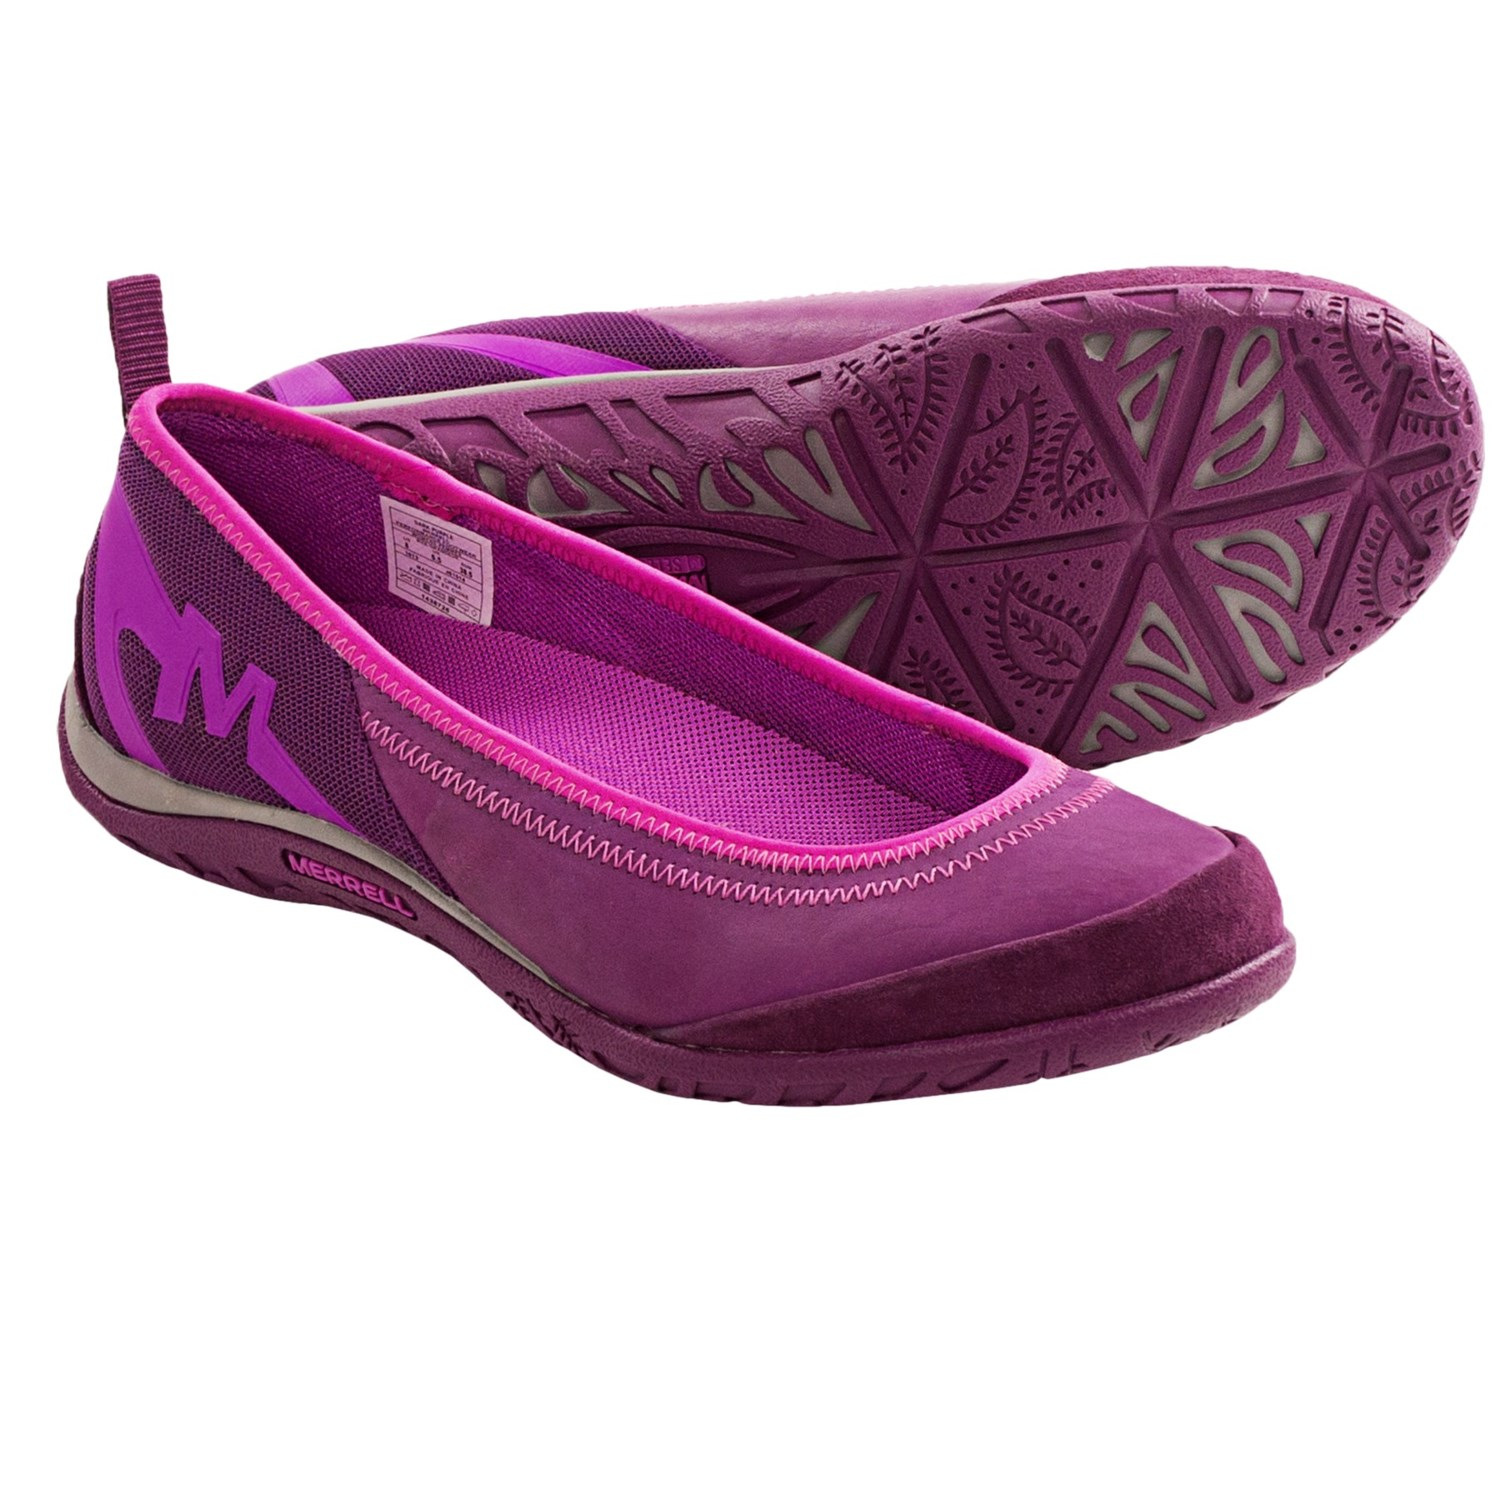 Merrill tennis shoes Online shoes for women